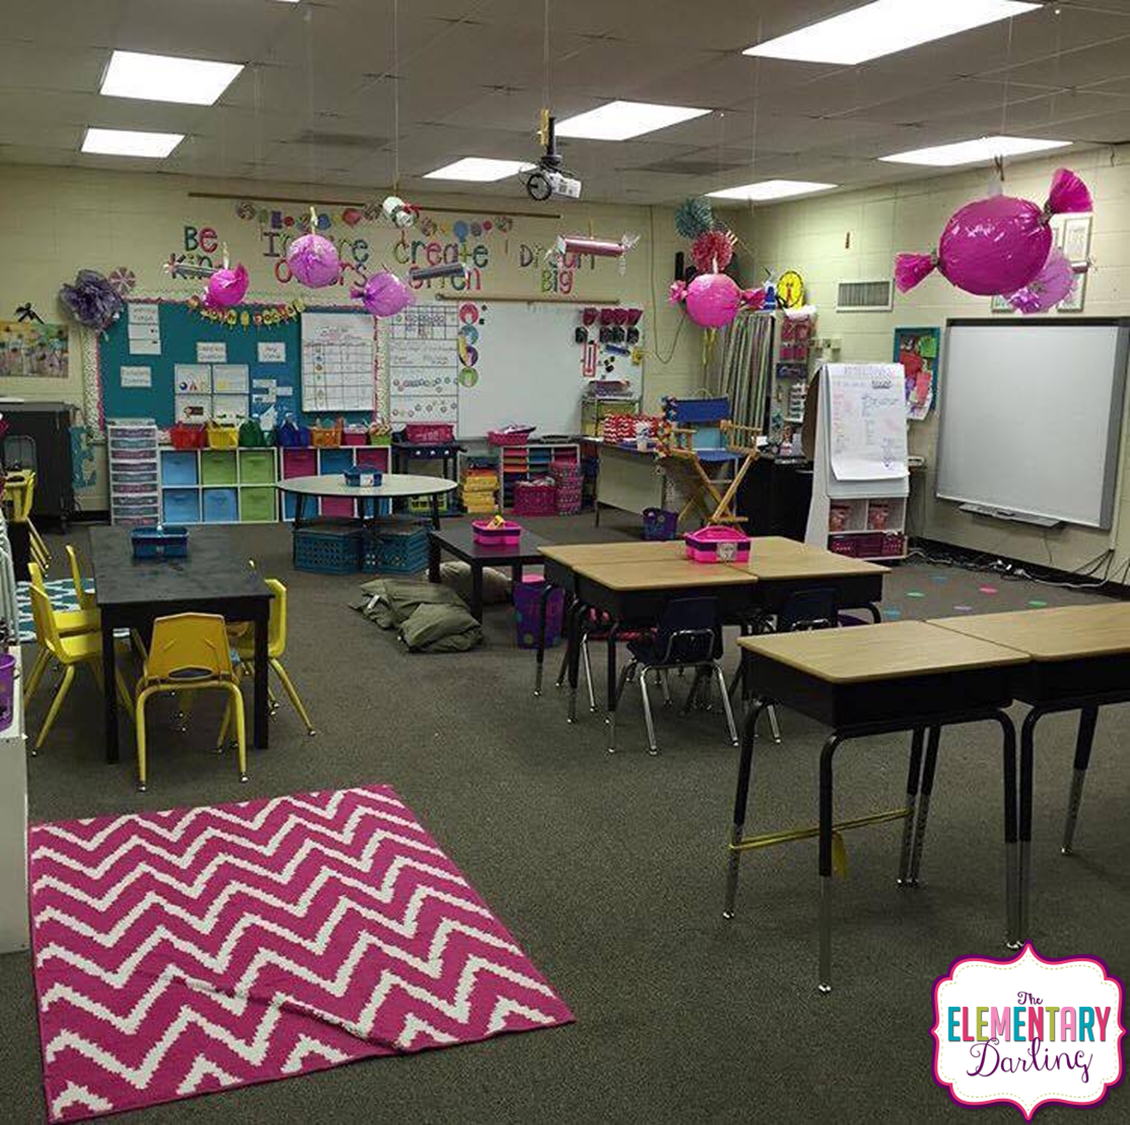 Classroom Seating Ideas Elementary ~ The elementary darling flexible seating what i have learned